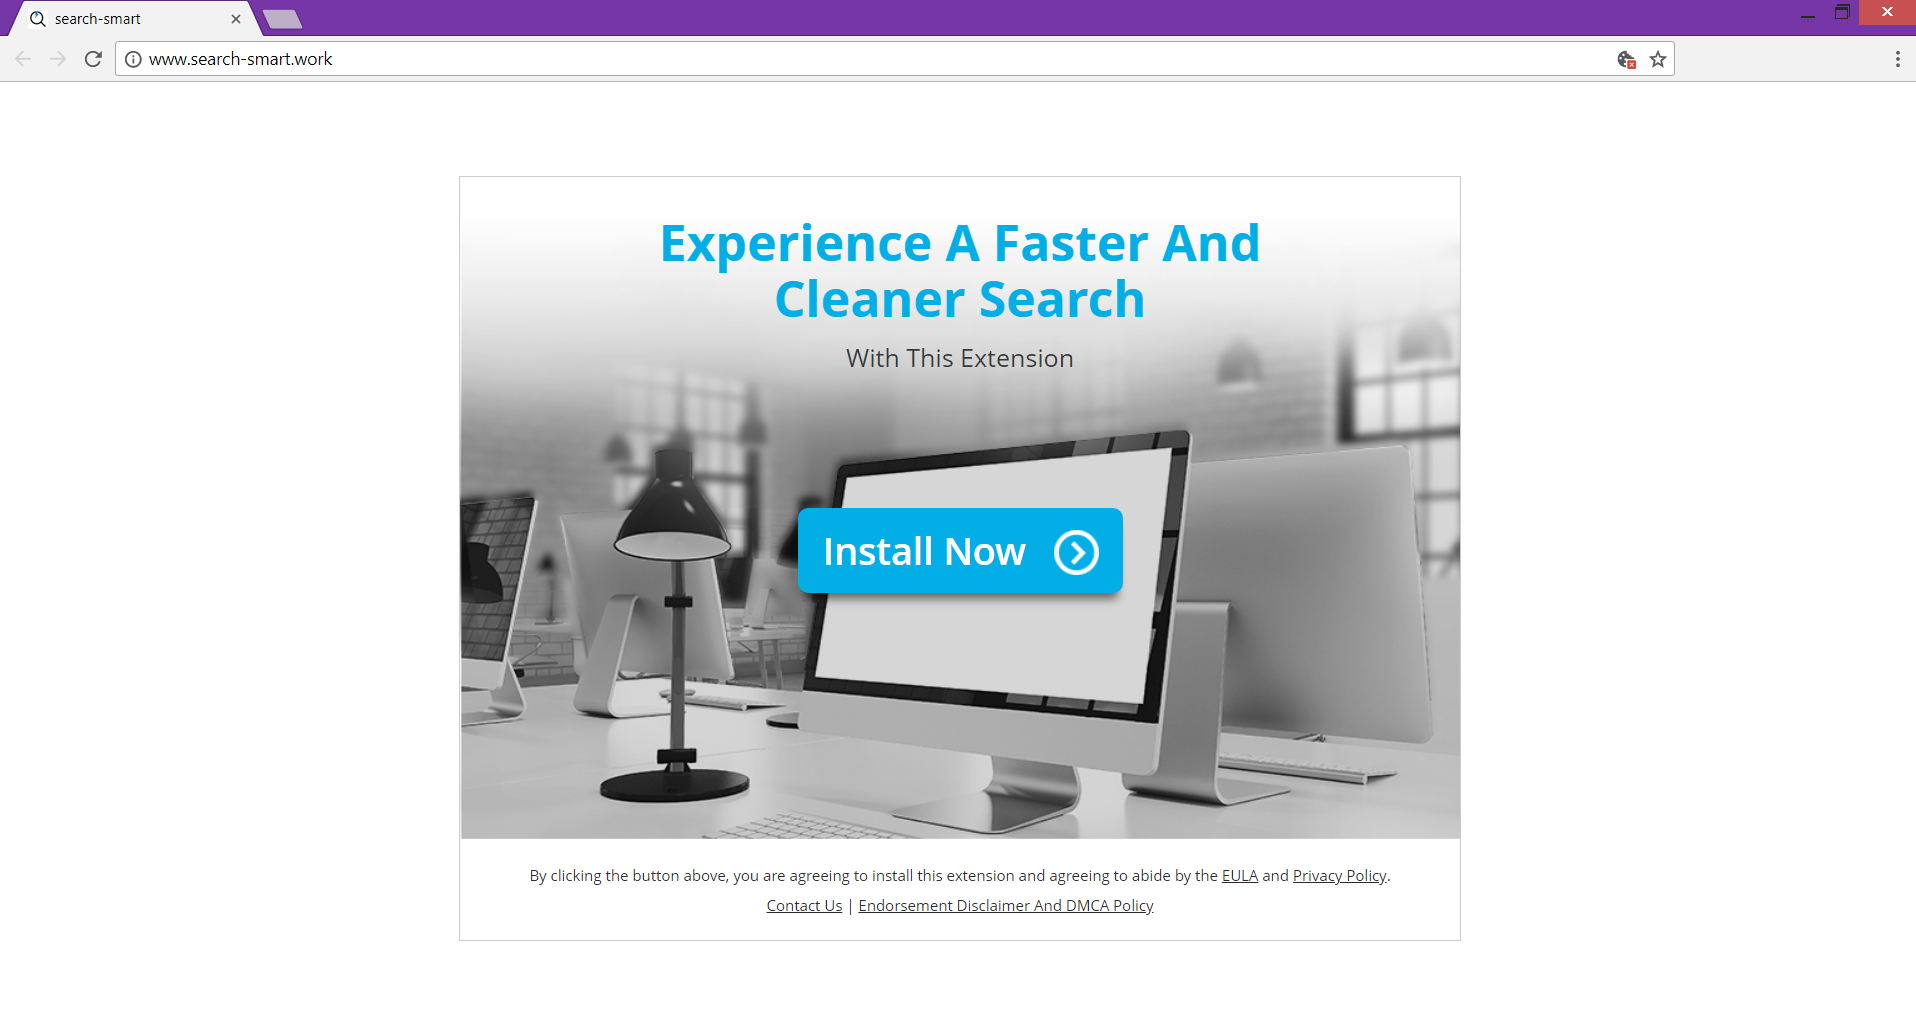 Search-smart.work redirect main page